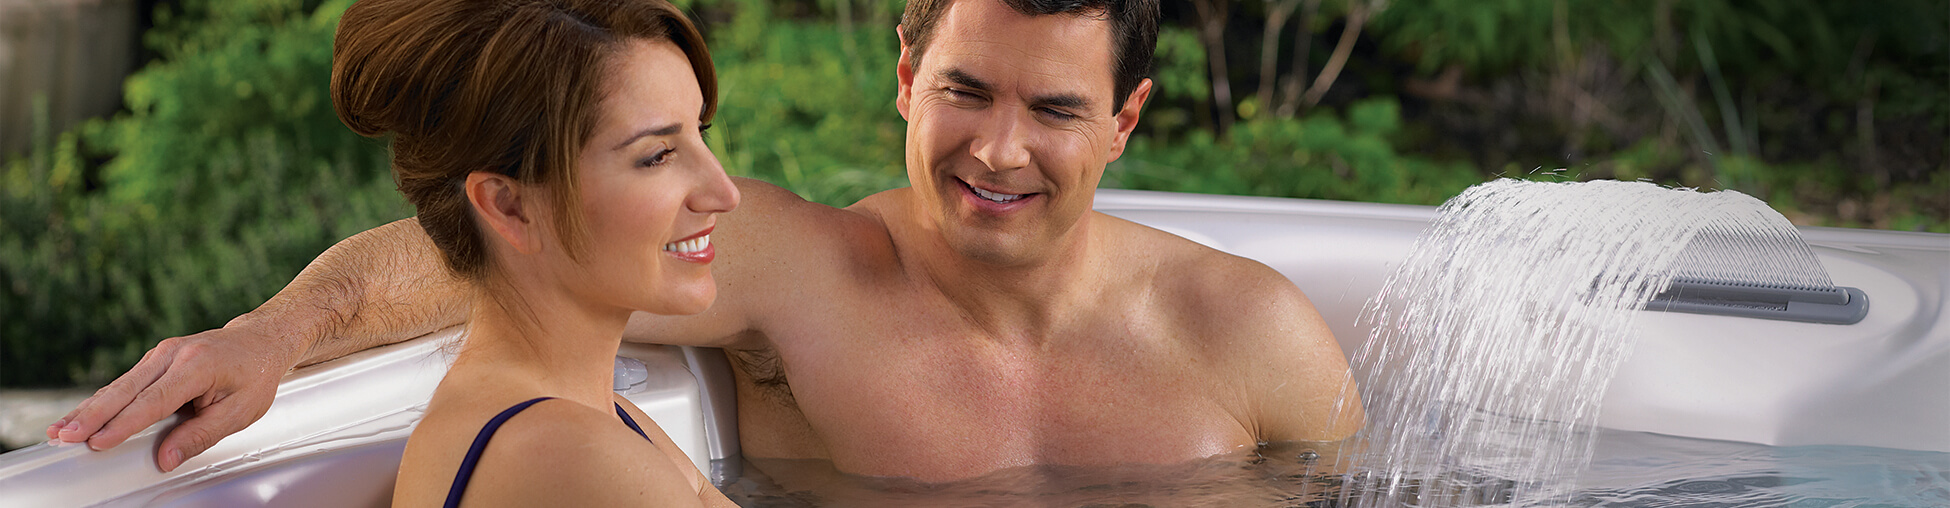 Hot Tub Store Near Steamboat Springs Shares 5 Star Review, Rating, Testimonial